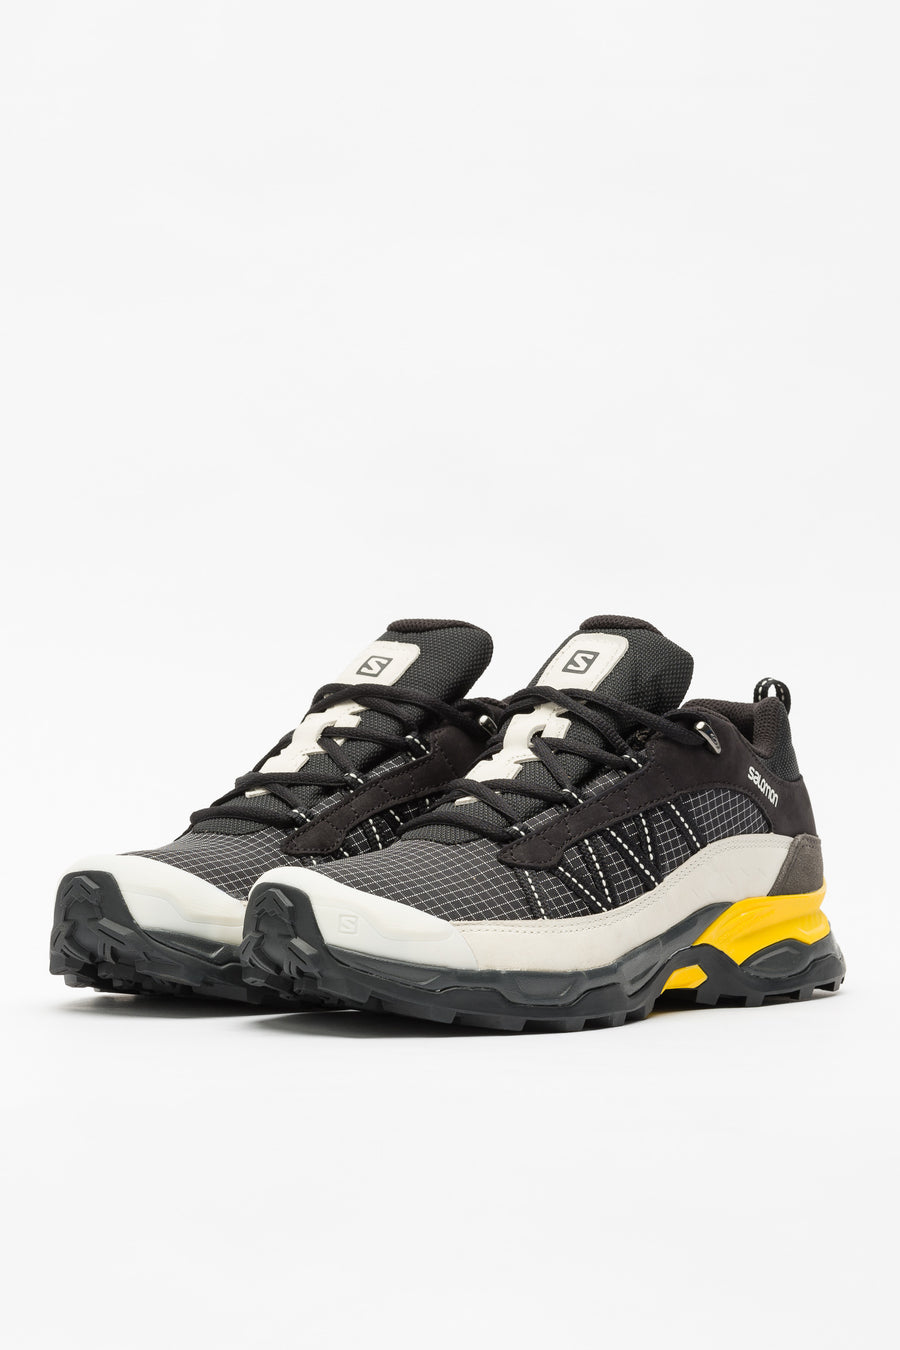 SALOMON S/LAB Shelter Low LTR ADV in Black/Vanilla/Yellow - Notre